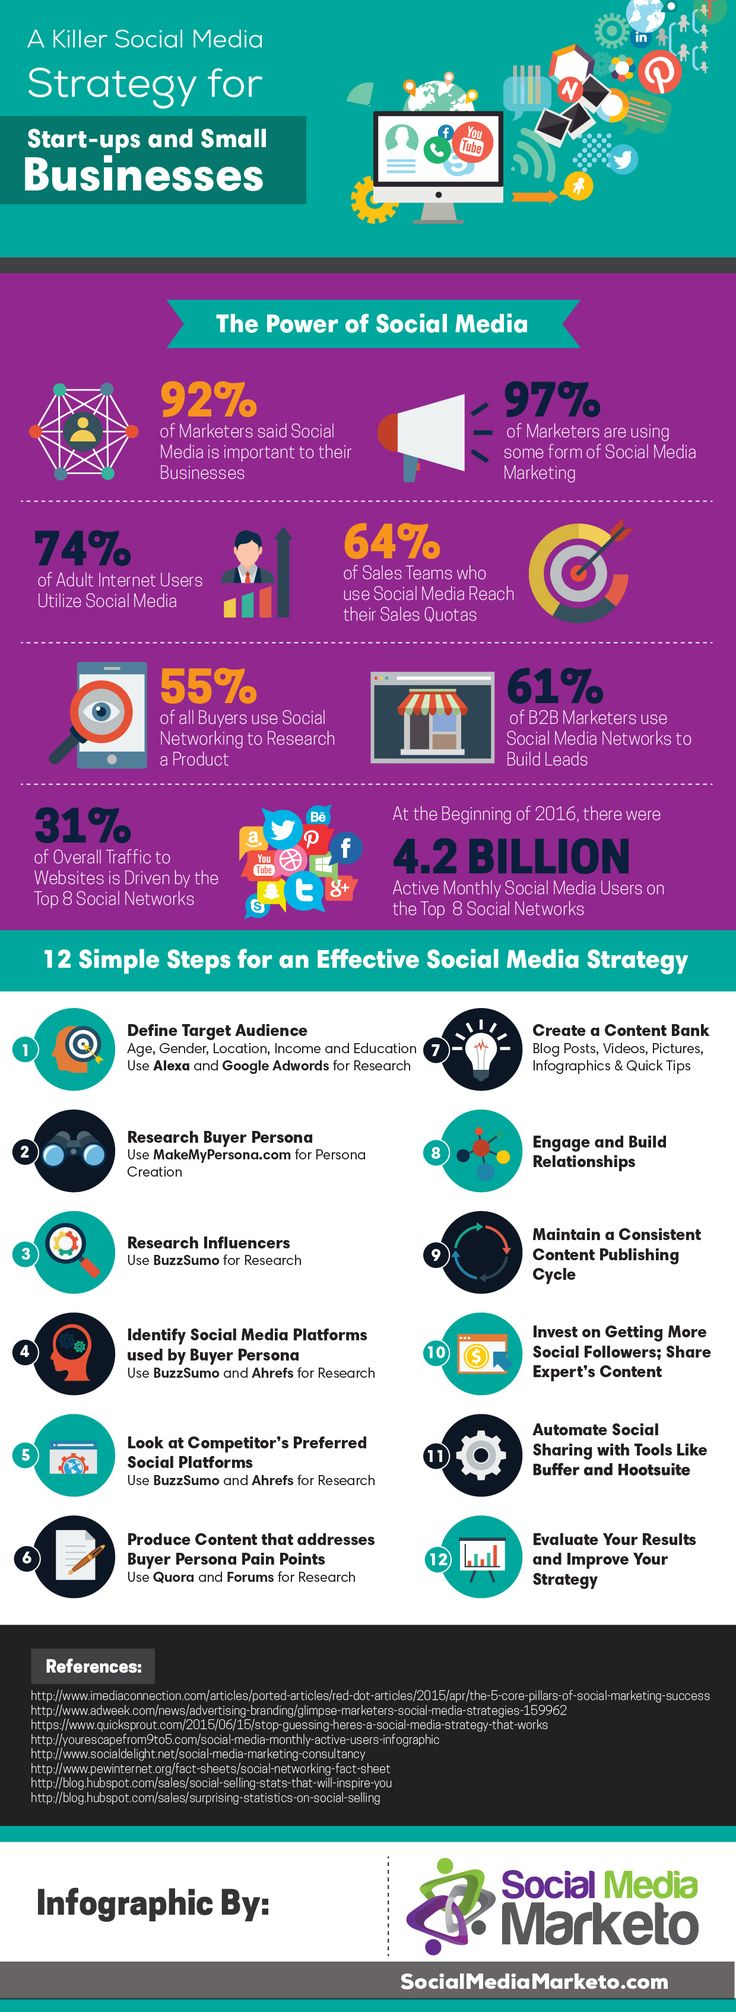 A Killer Social Media Marketing Strategy for Small Businesses - #Infographic